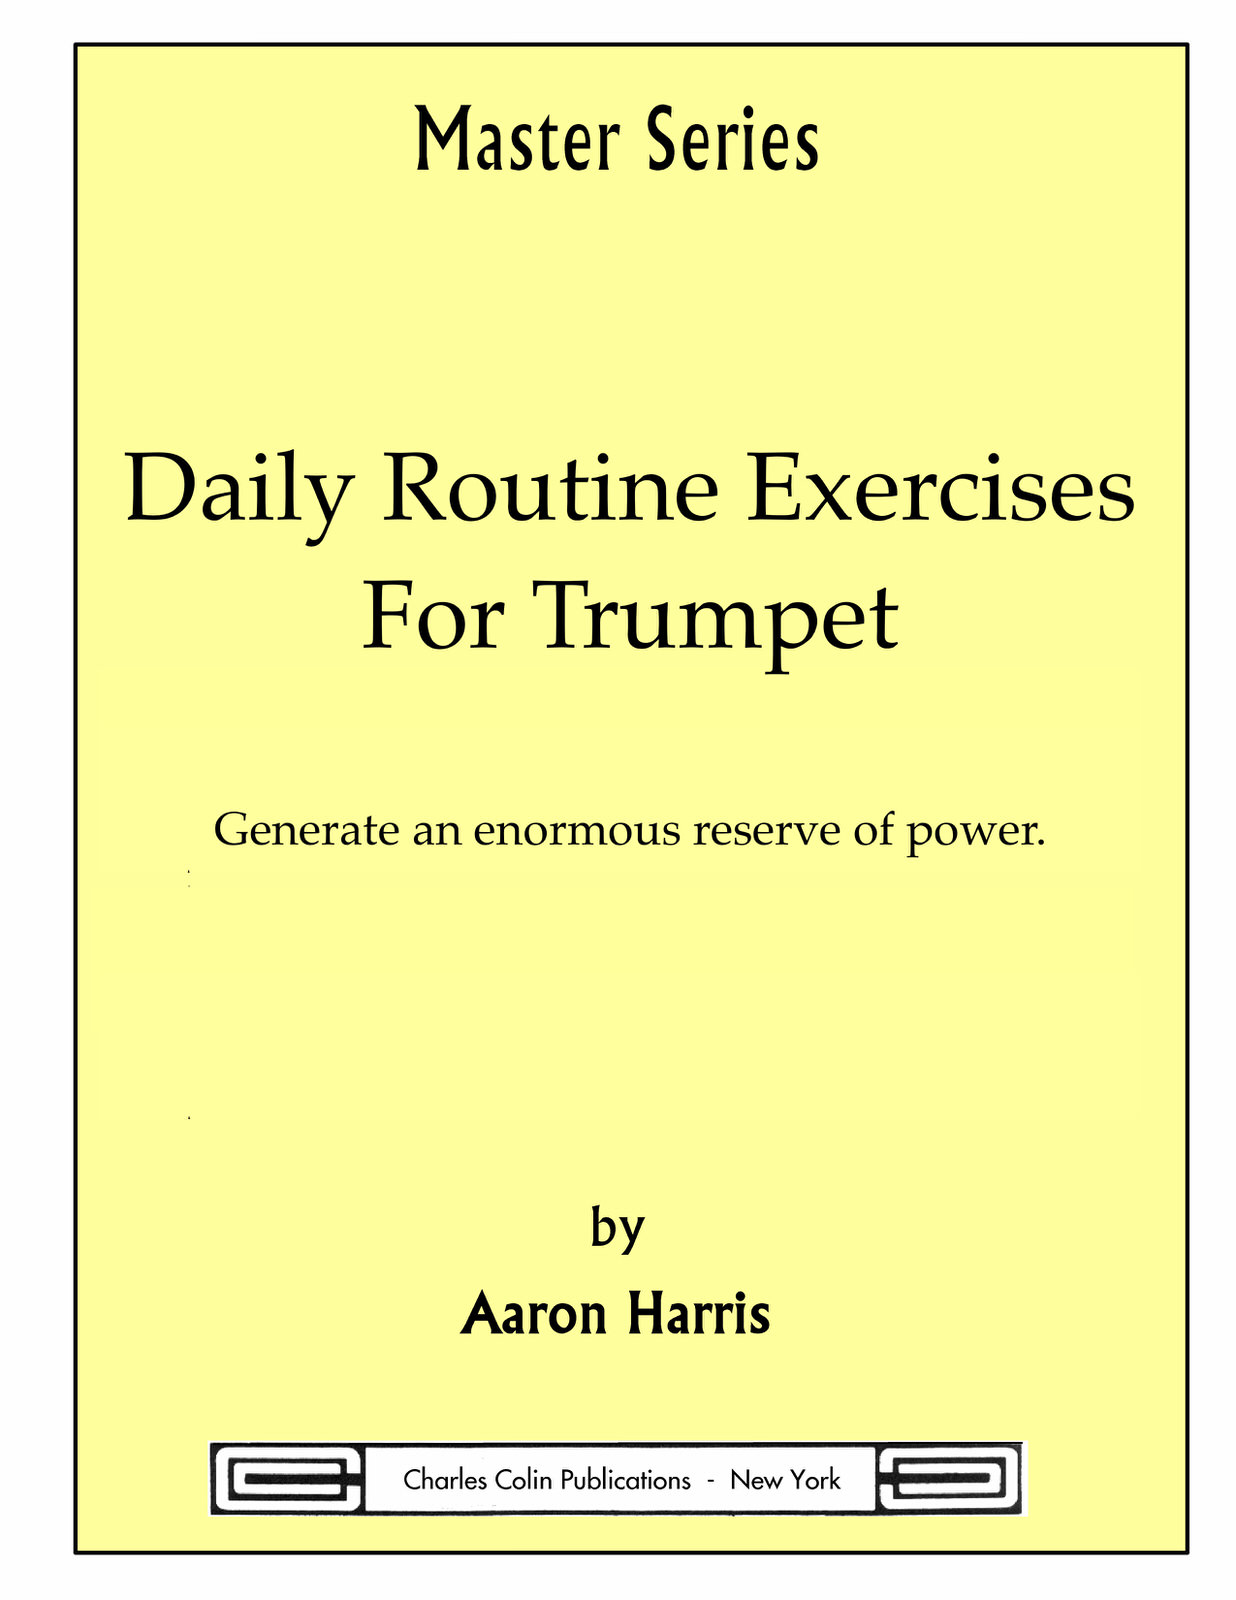 my daily routine example pdf